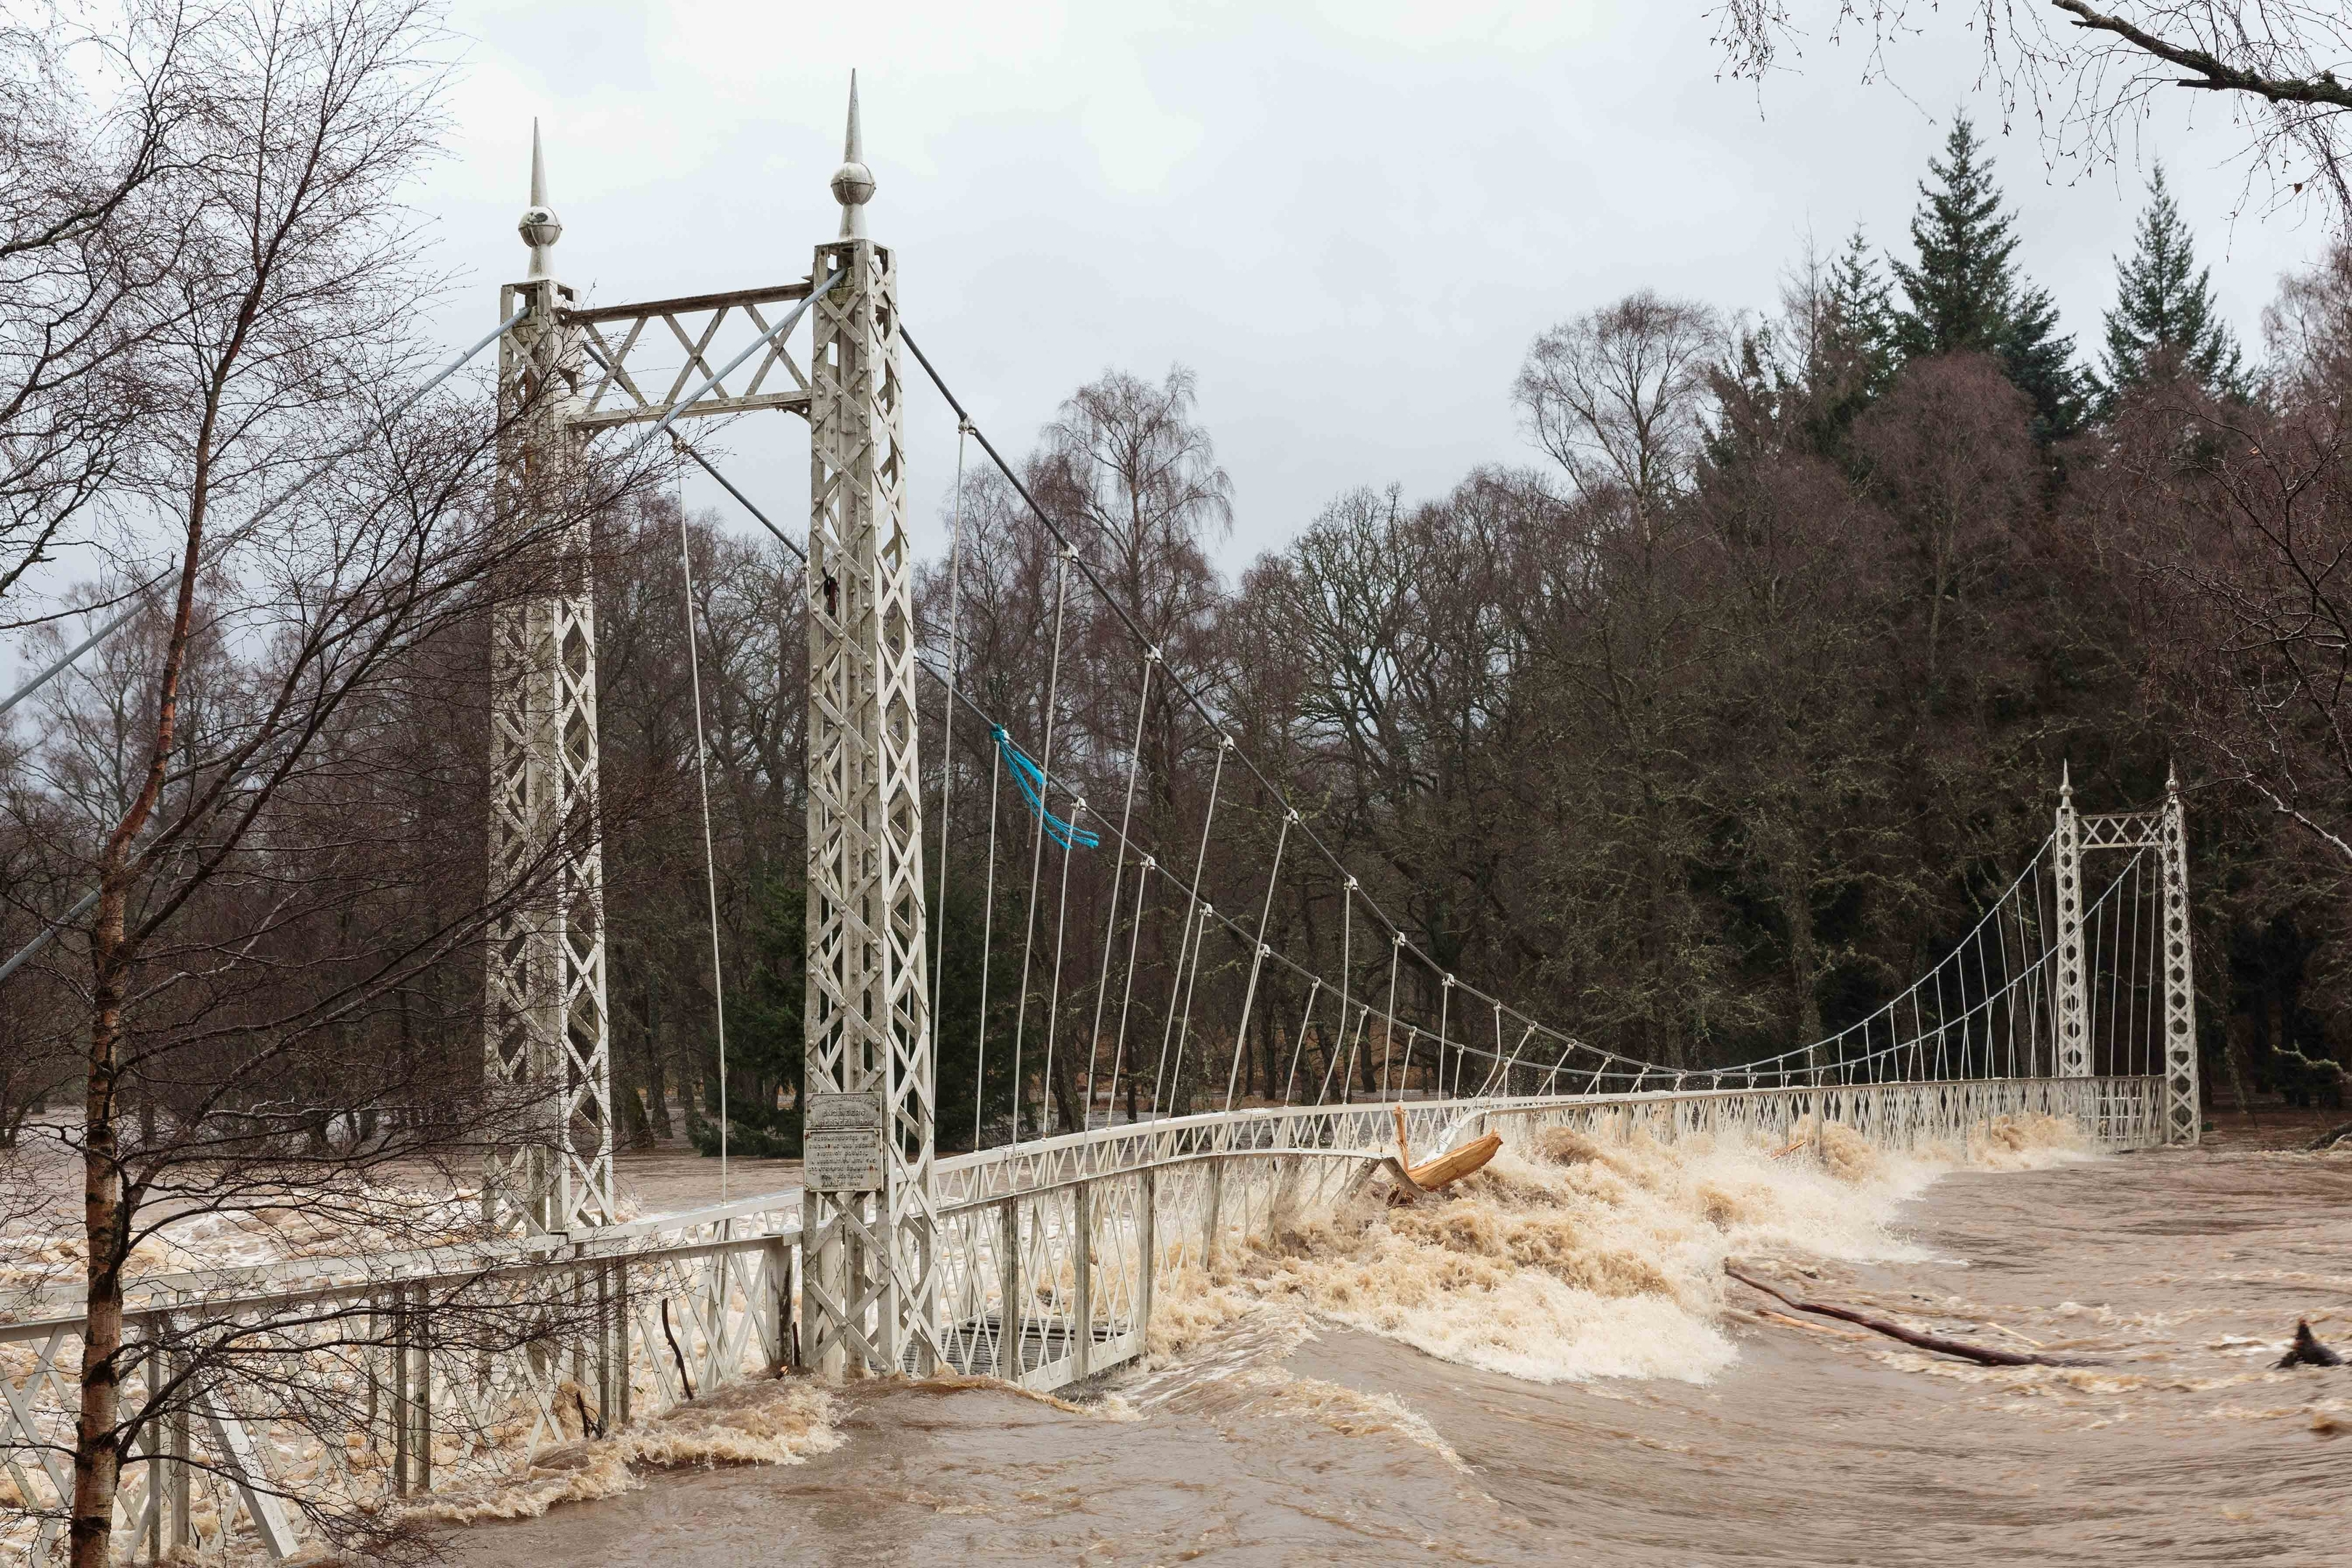 The Cambus O'May footbridge over the River Dee was severely damaged by Storm Frank in 2015